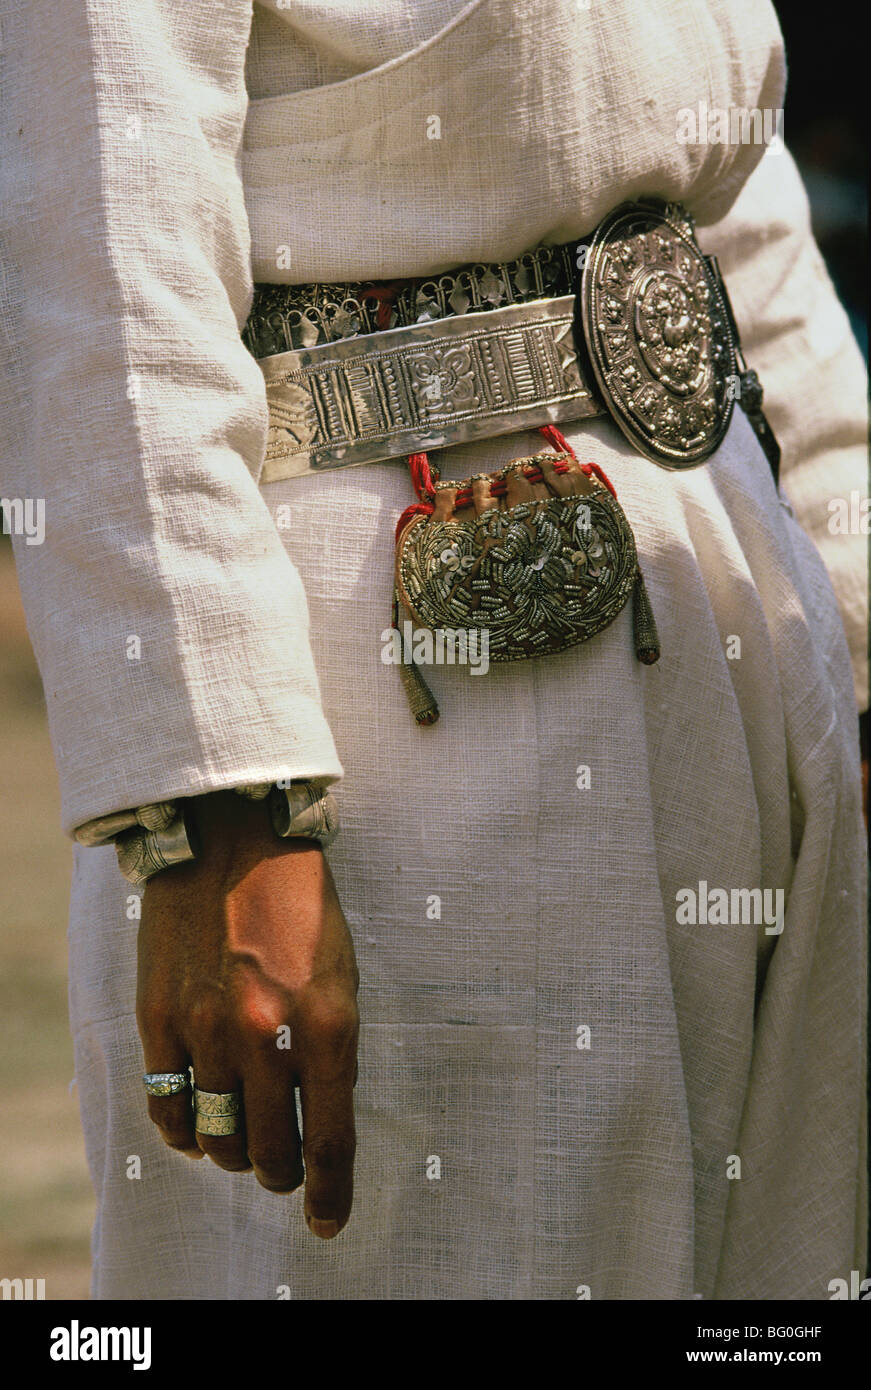 Ornate silver belt on a man, Northern Thailand, Southeast Asia, Asia - Stock Image